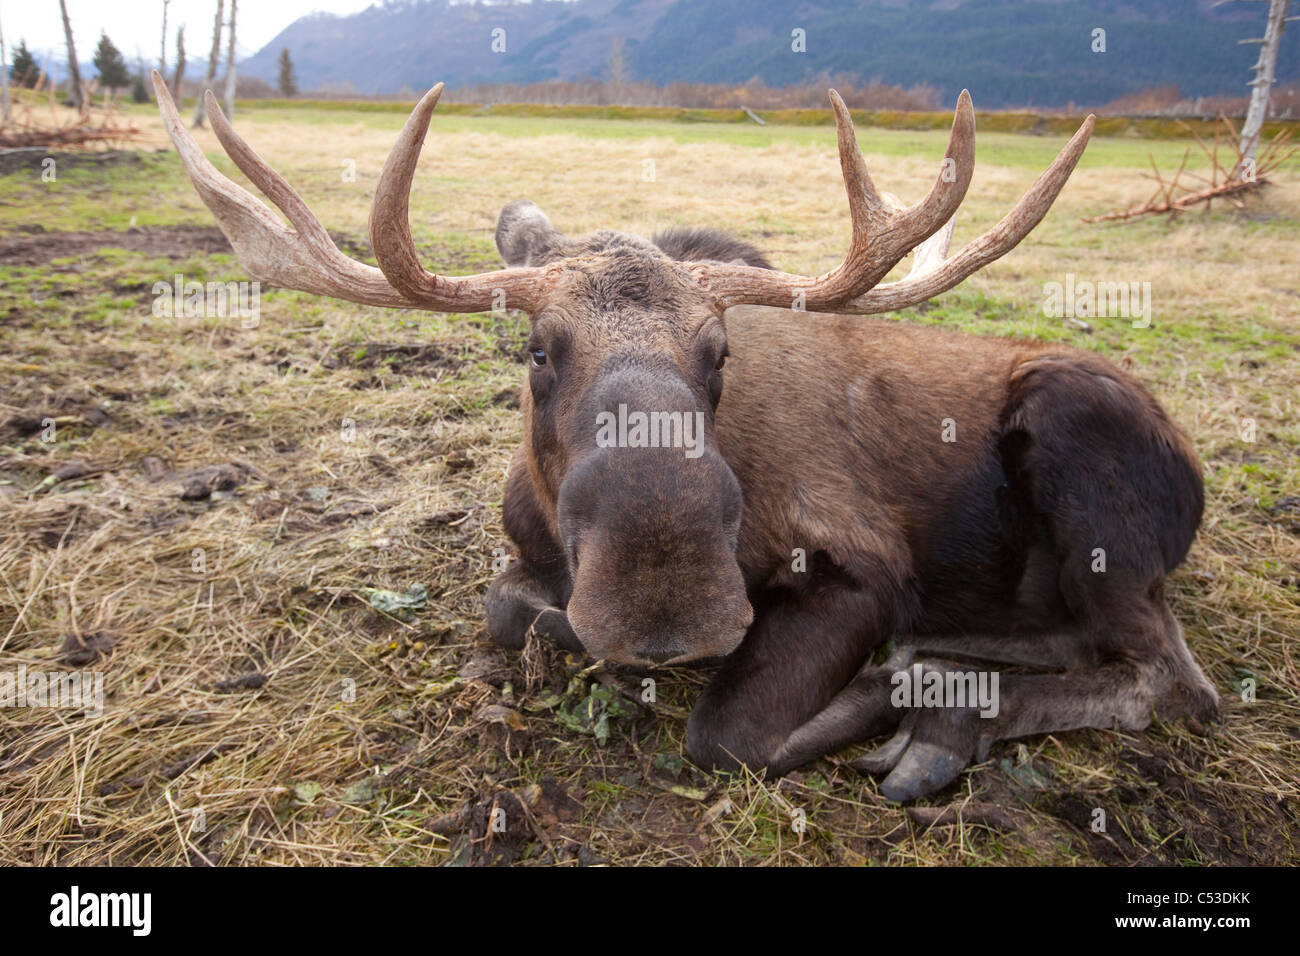 A wide-angle view of a bull moose lying in grass at the Alaska Widllife Conservation Center, Alaska. CAPTIVE - Stock Image